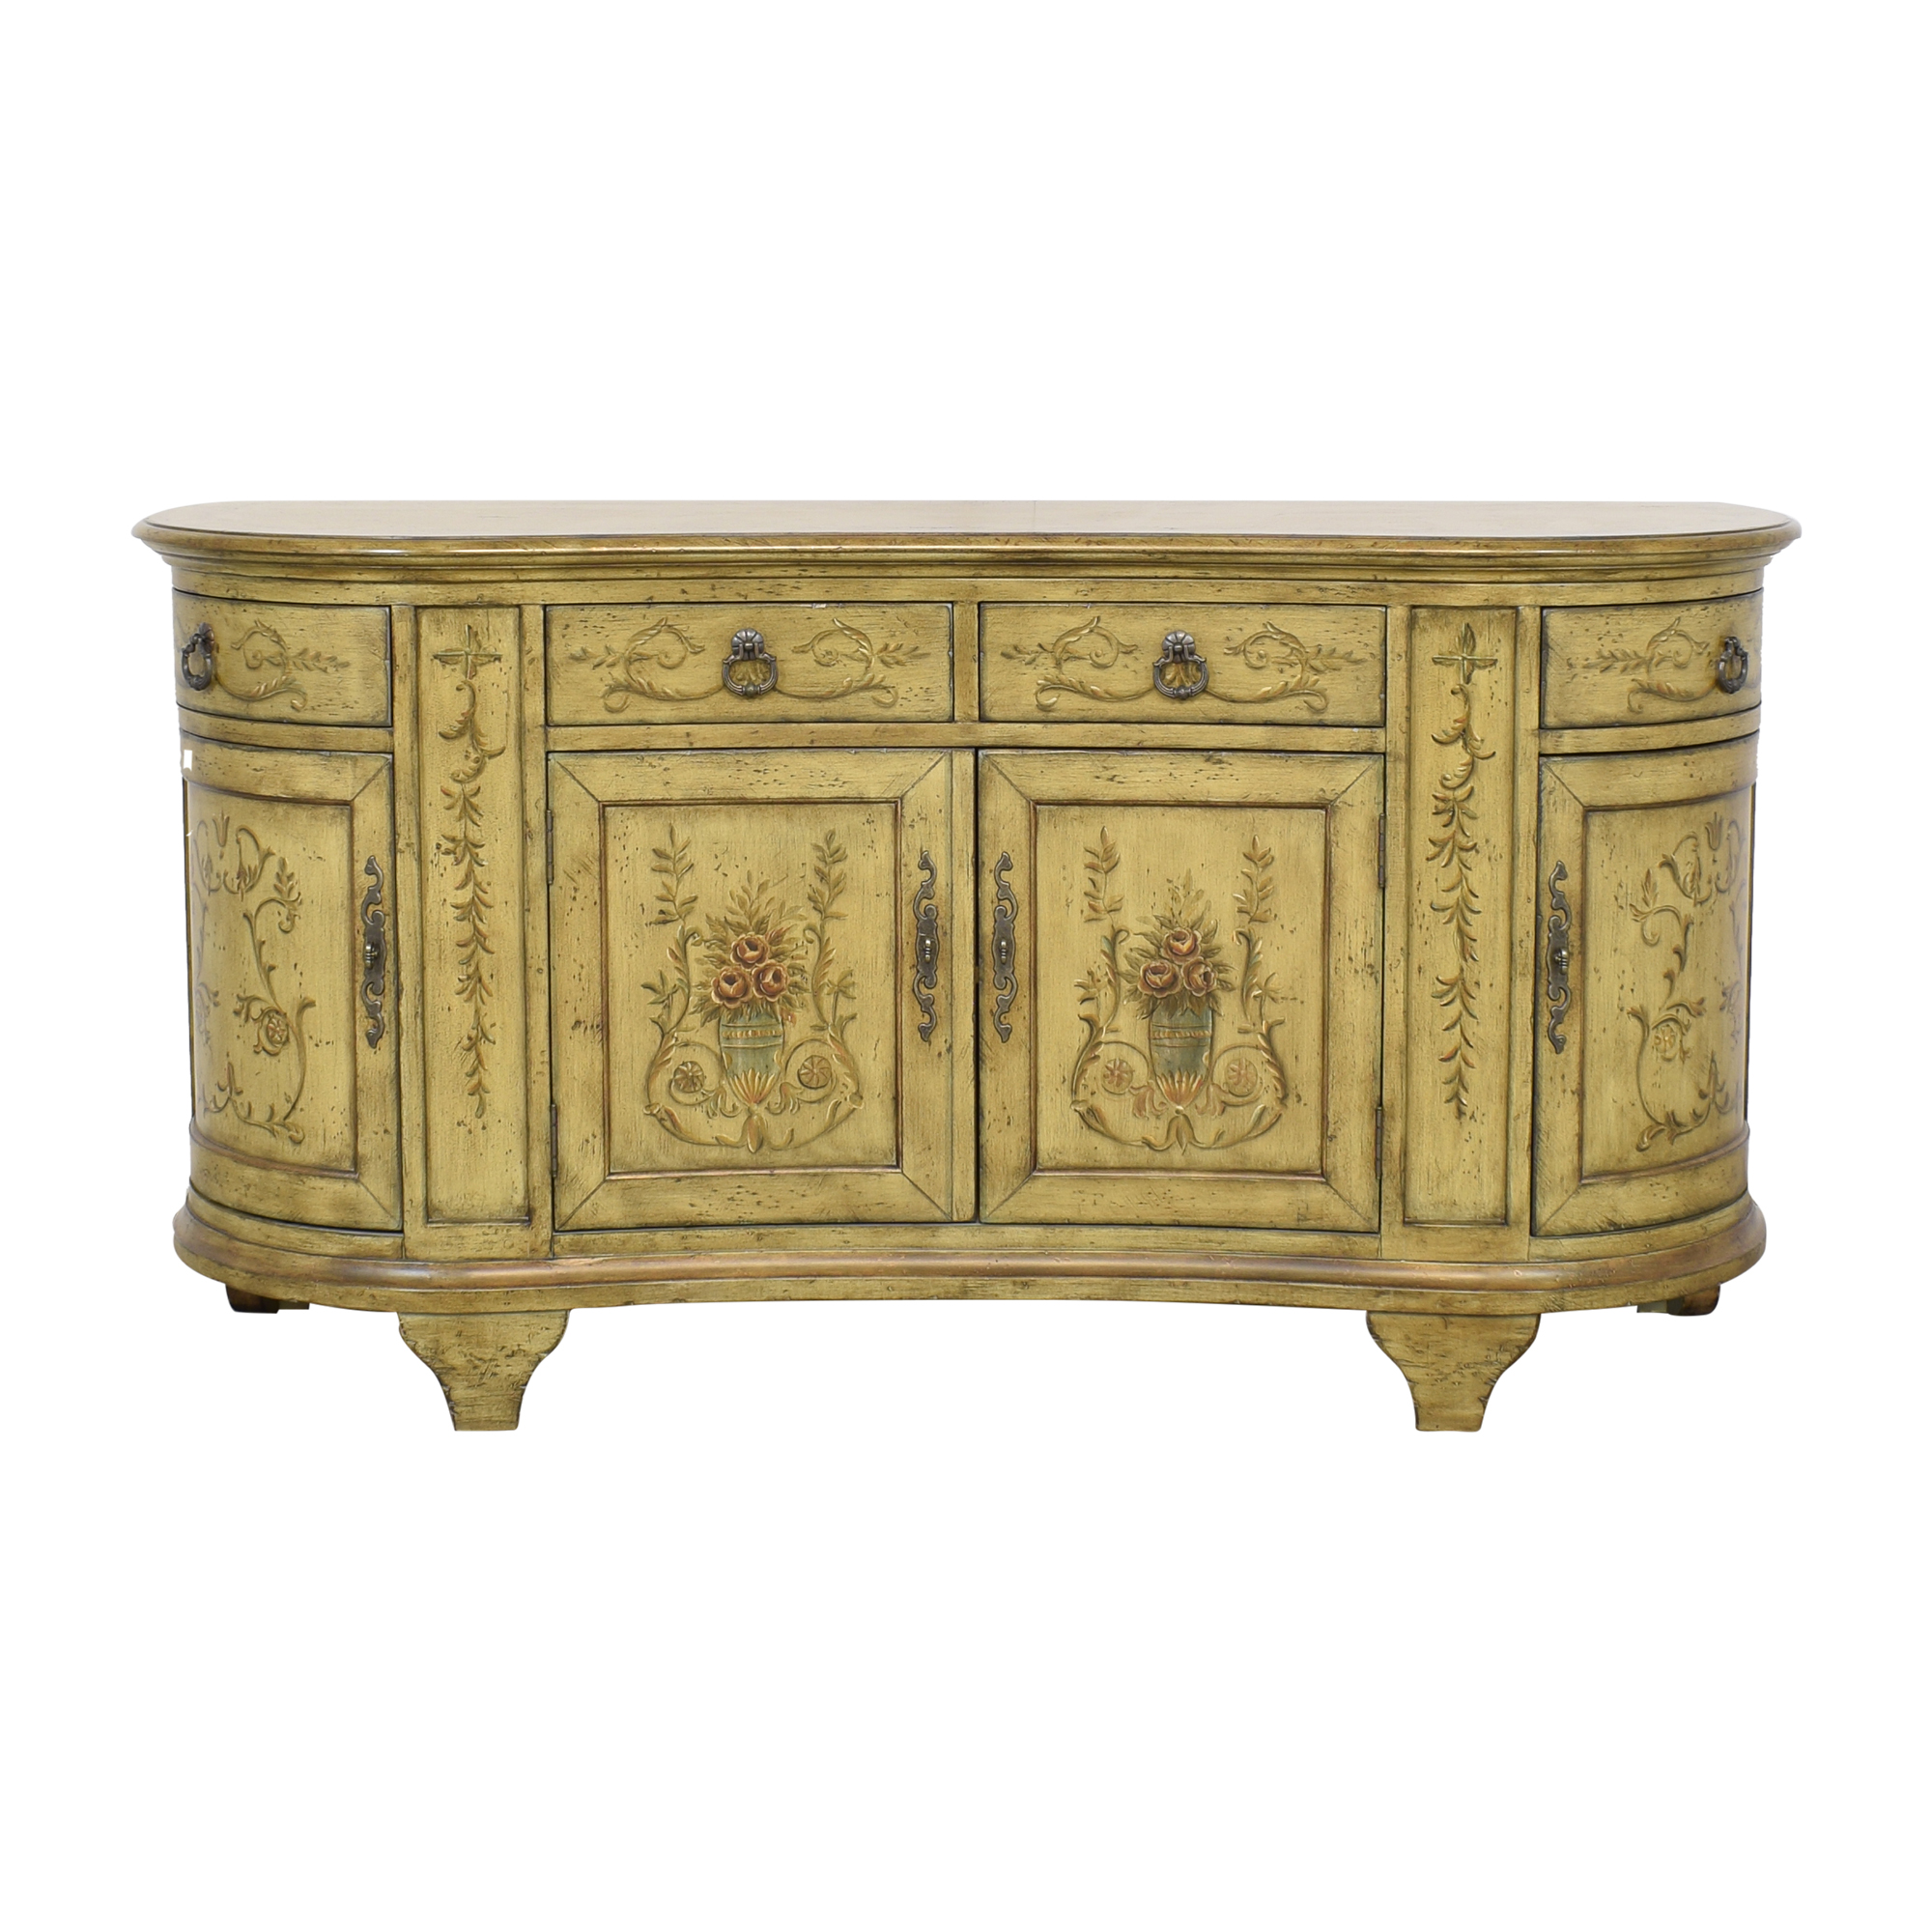 Hooker Furniture Hooker Seven Seas Sideboard price